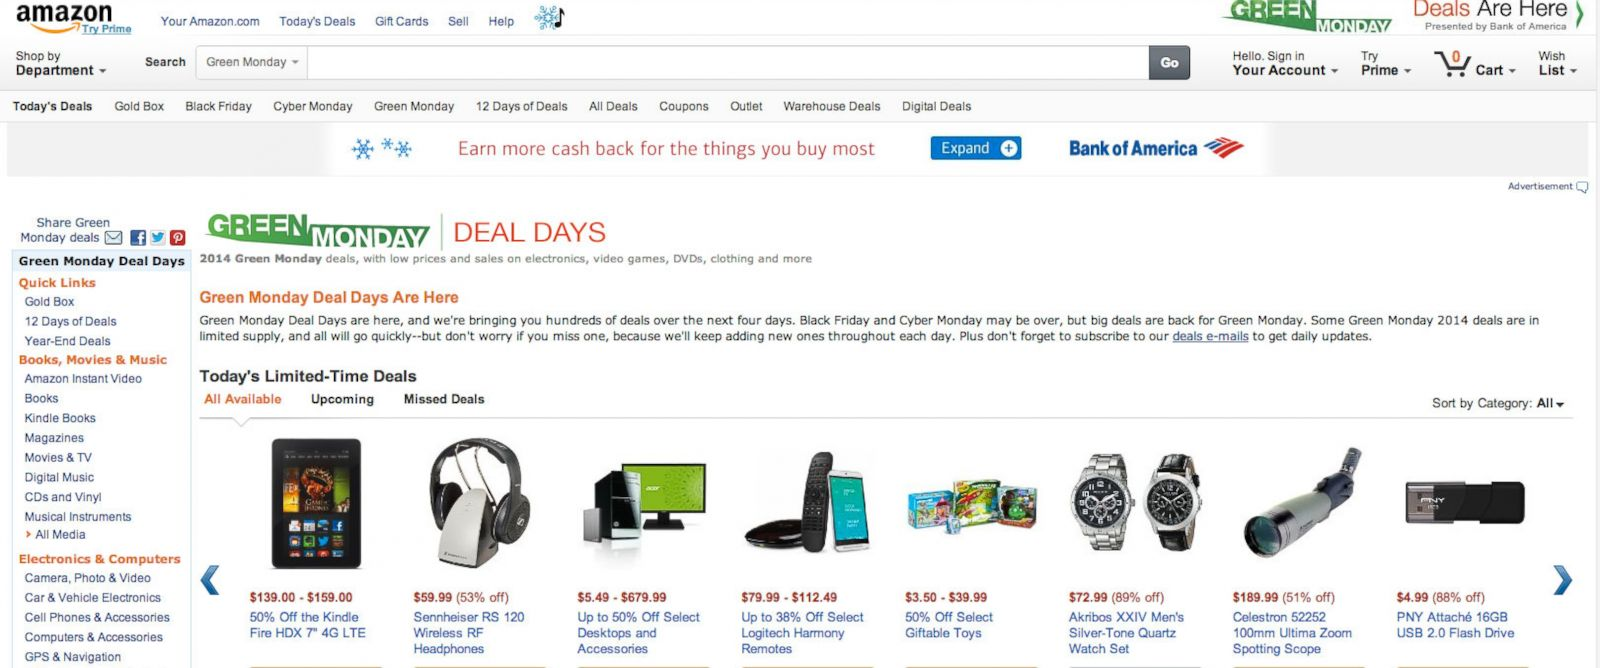 PHOTO: Green Monday deals appear on this screen grab from Amazon.com.